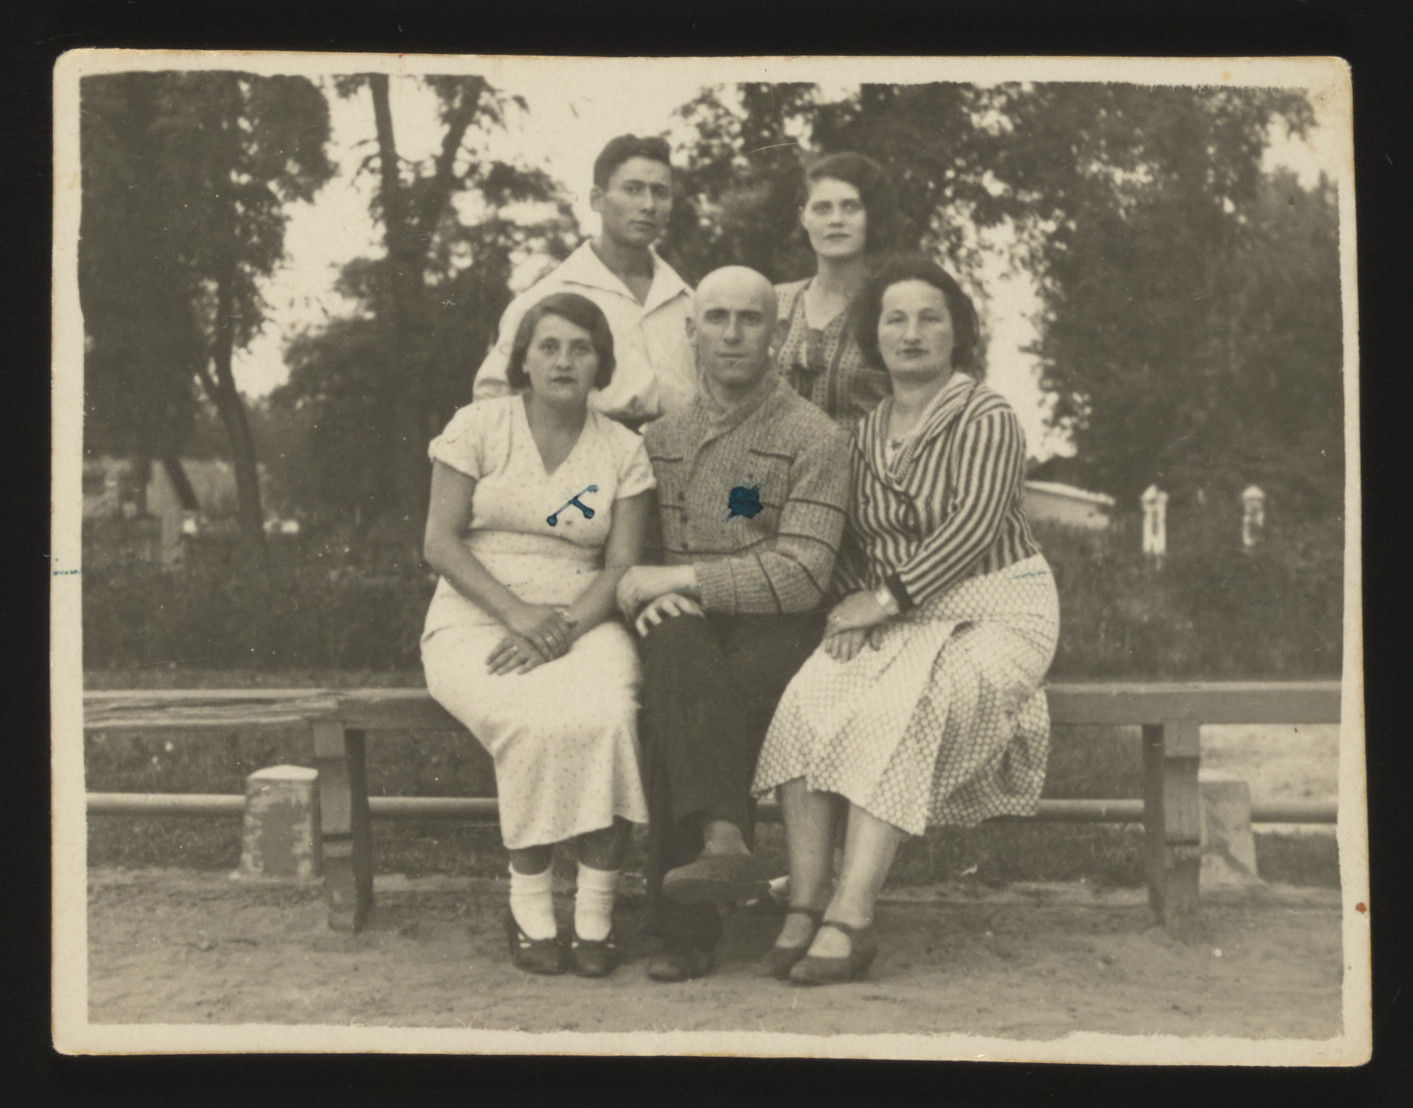 Members of the extended Szabason family pose on a bench in a park in Kozienice.  Pictued standing from left to right are: Aaron and Etel (Szabason) Erlichman. Seated from left to right are: Chaja (Szabason) Rubinstein, Mordechai Rubinstein and a friend.  All perished during the Holocaust.